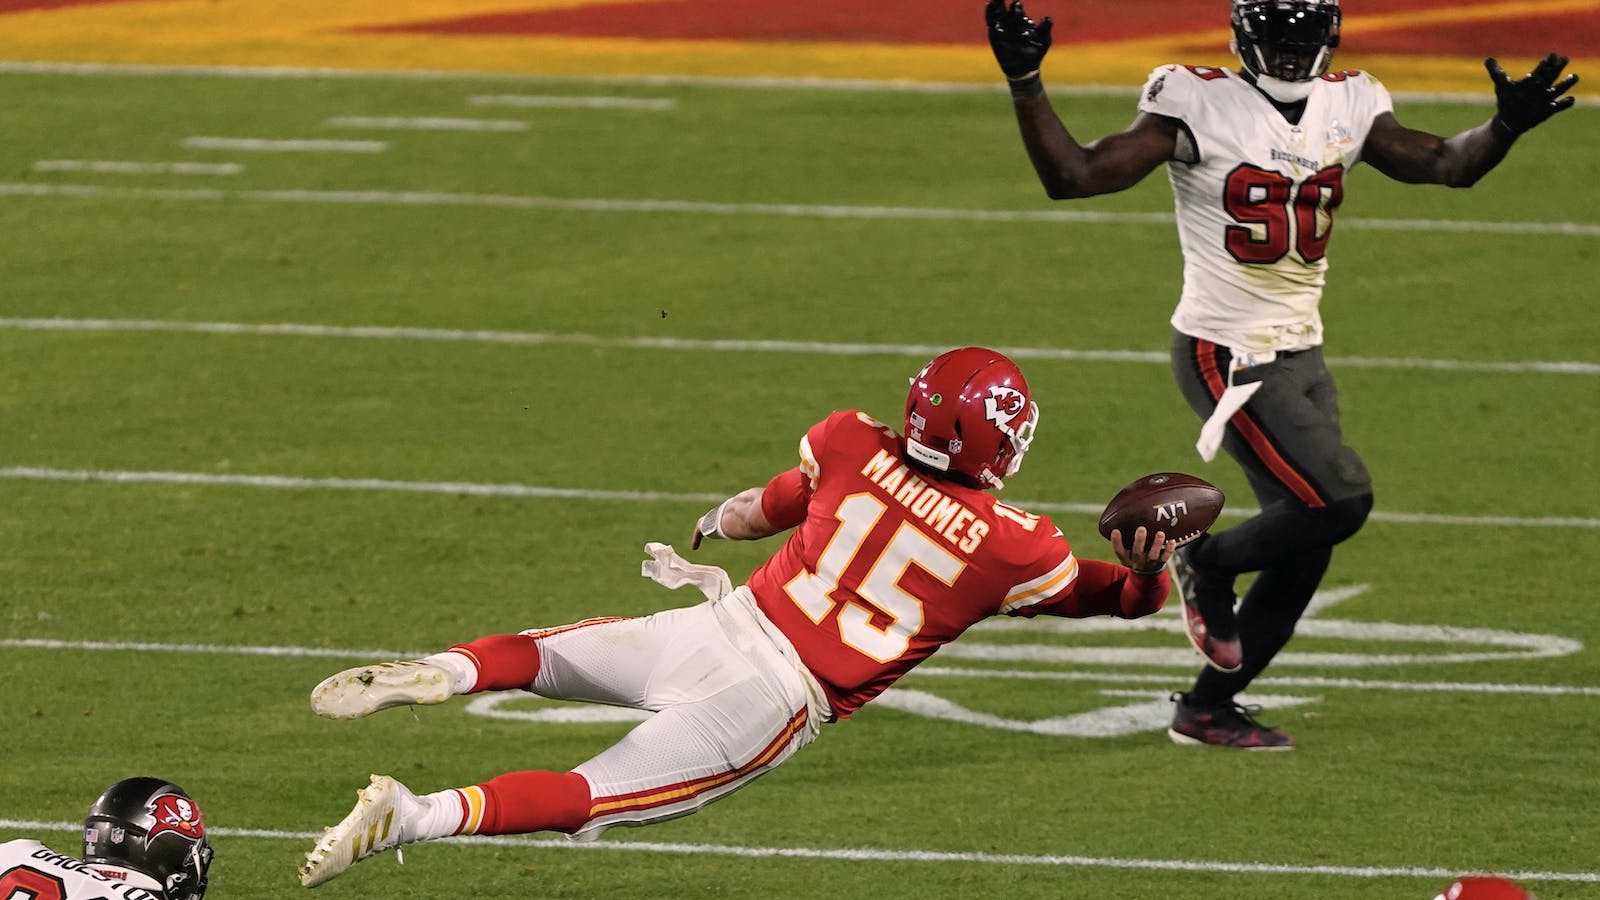 Kansas City Chiefs playing Tampa Bay Buccaneers during the Super Bowl  last month. Photo by AP.